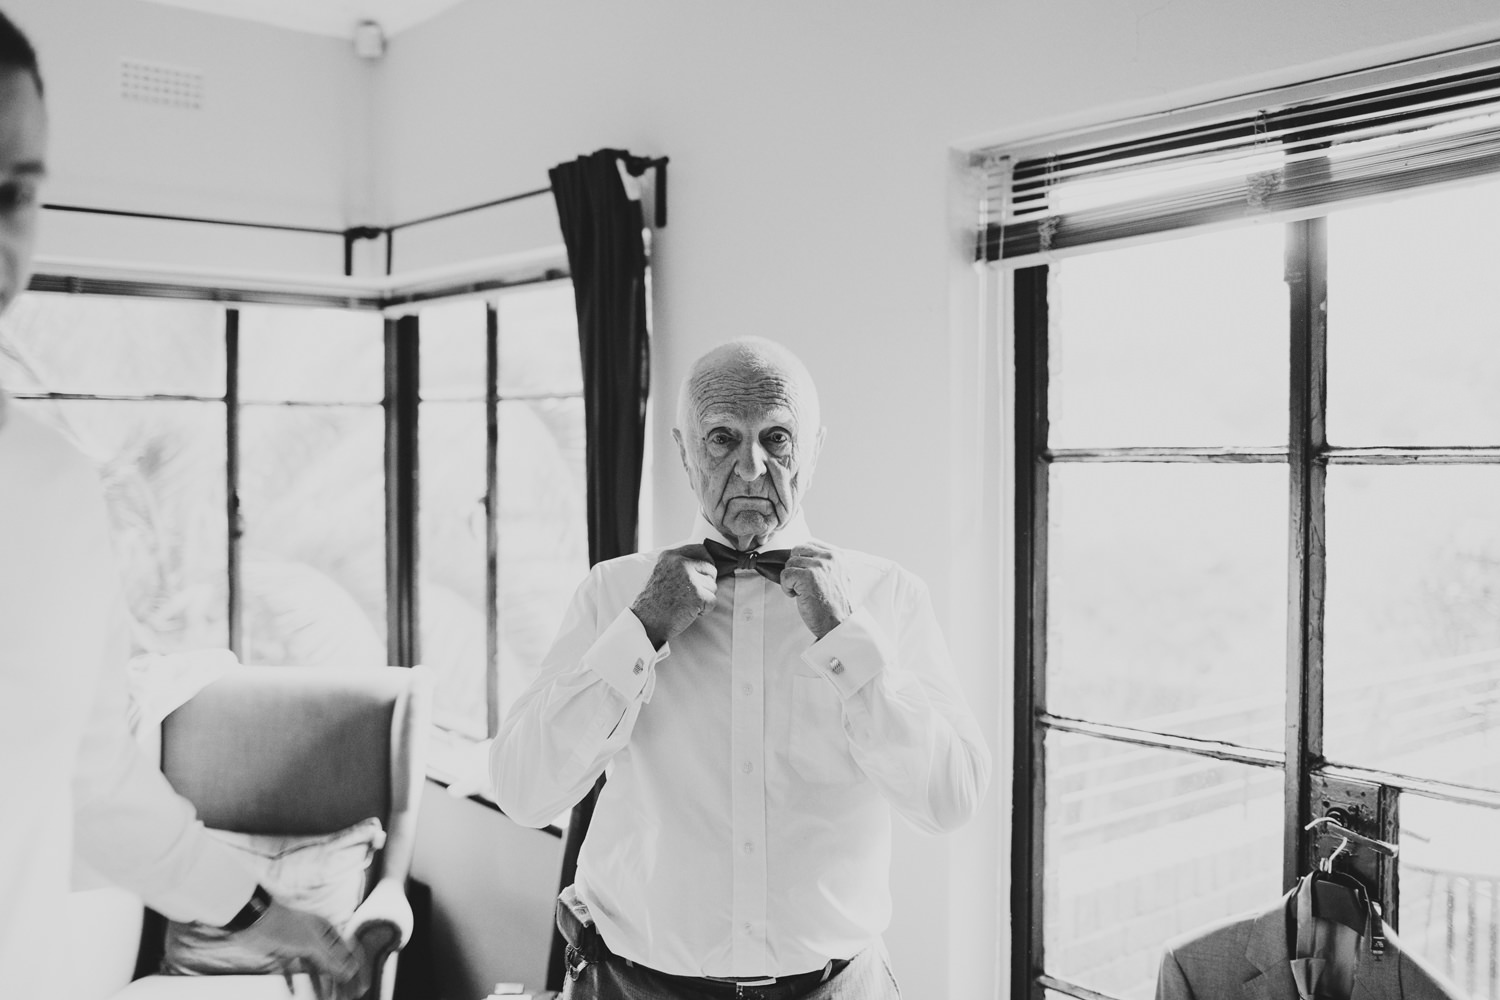 011-Melbourne_Wedding_Photographer_Jonathan_Ong_Best2015.jpg